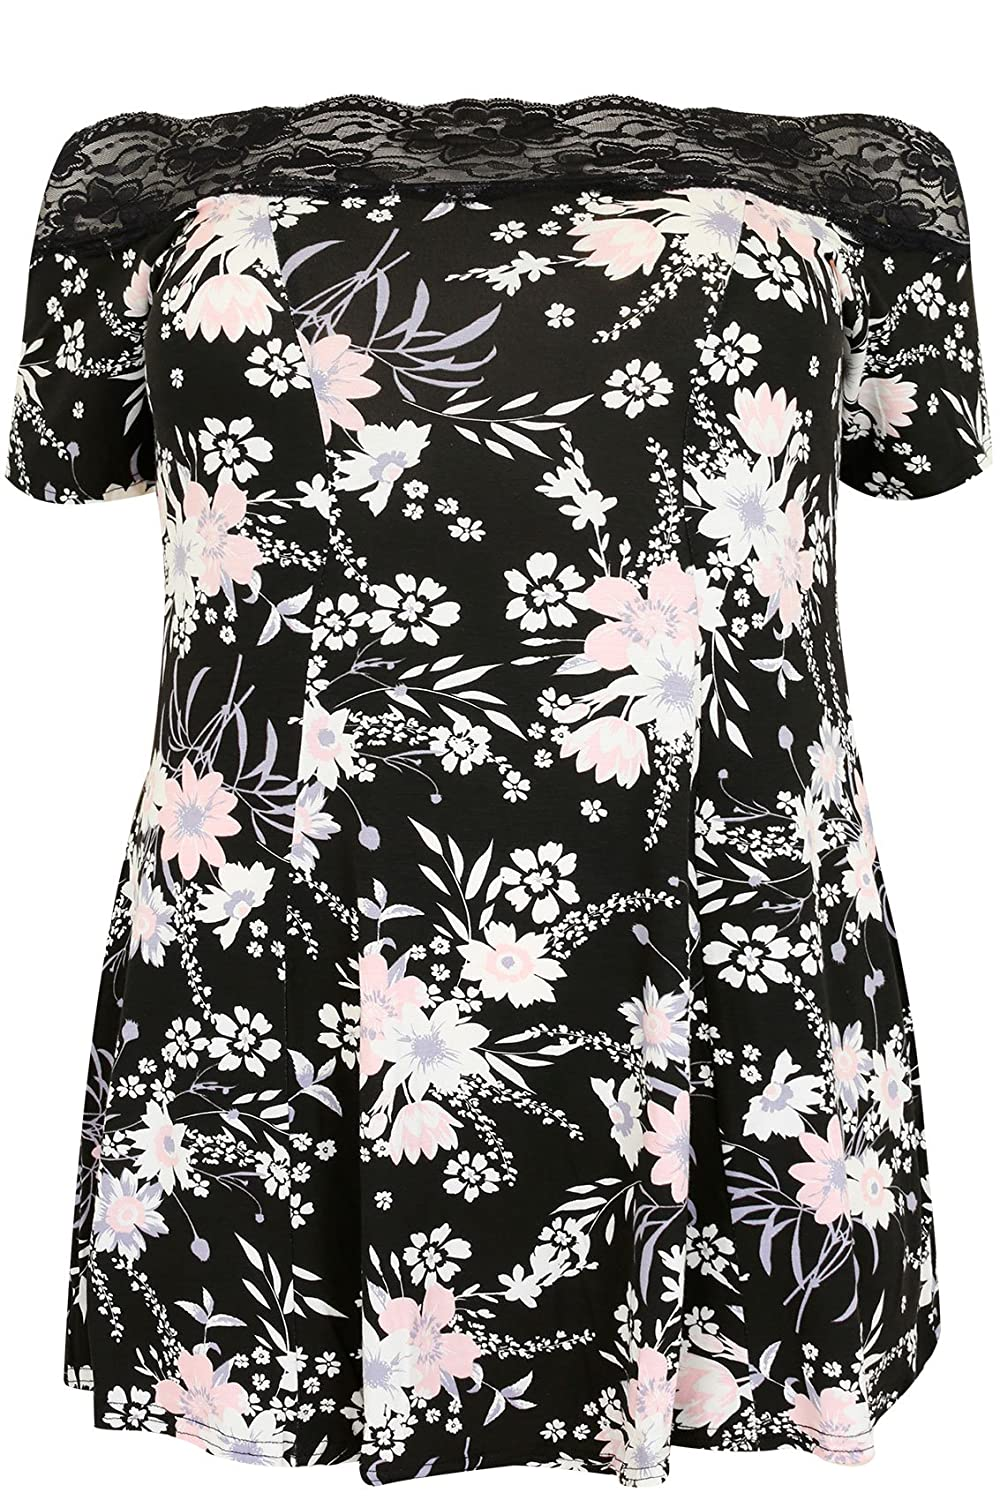 Yoursclothing Plus Size Womens Floral Lace Bardot Top With Short Sleeves